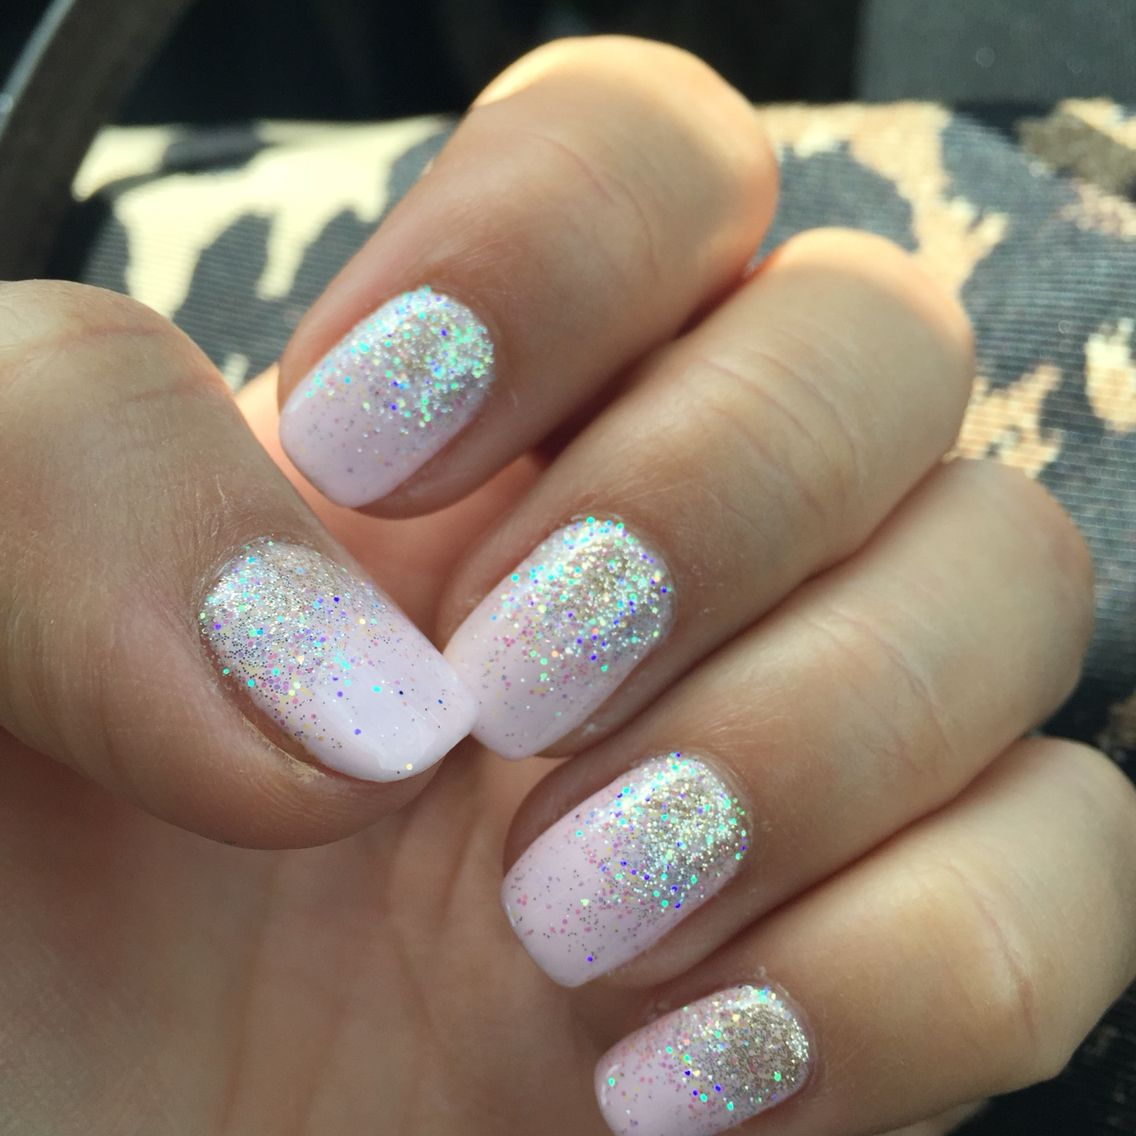 Shellac winter glow with glitter ombré | Shellac manicures by ...